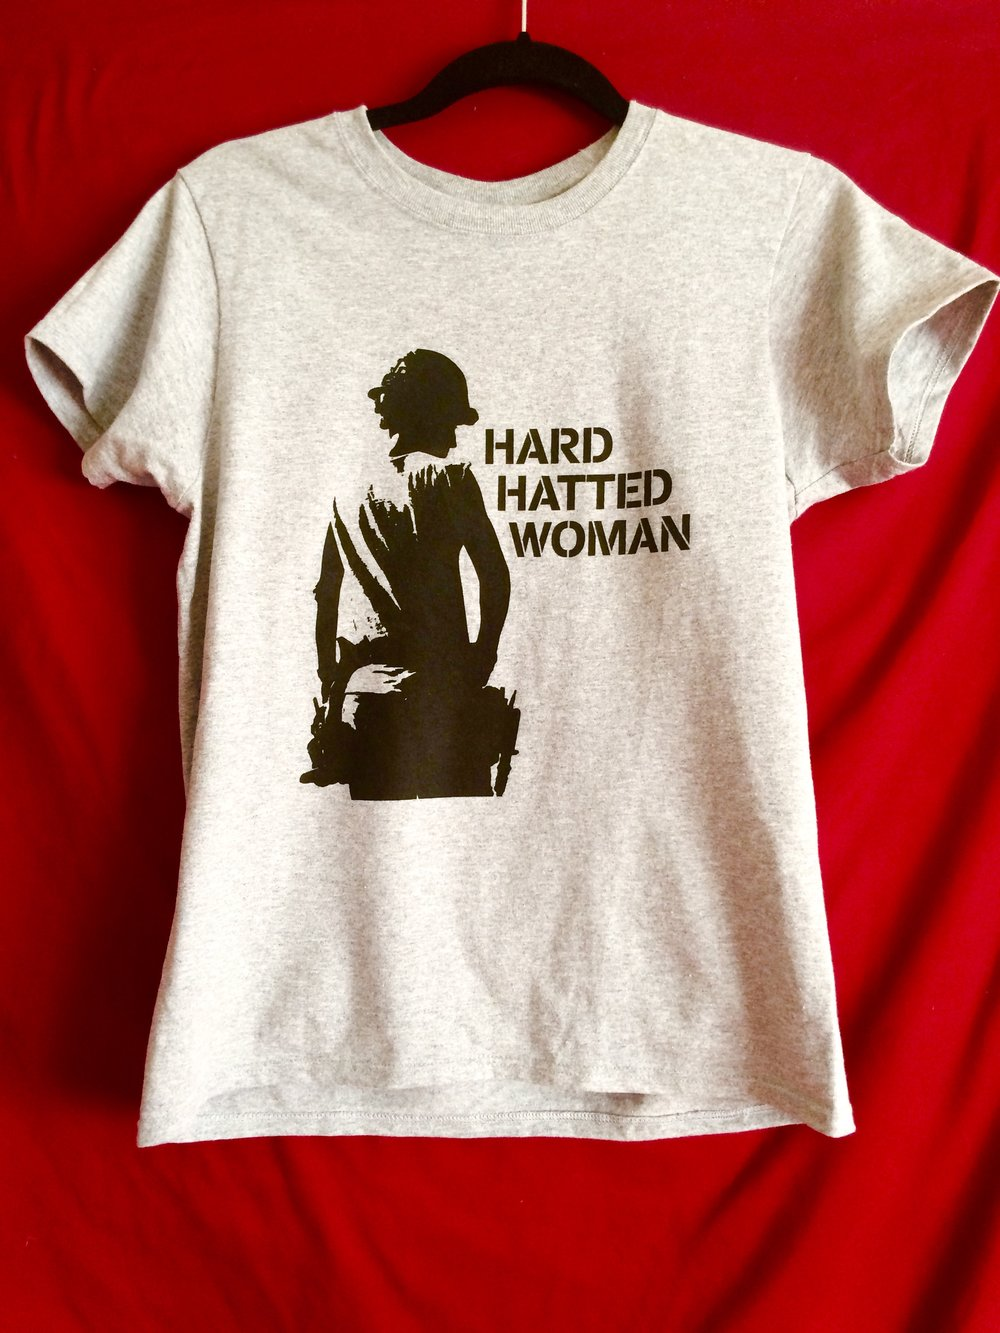 Are you a hard hatted woman at heart? Let the world know! - Donate $75 or more today and get a FREE TEE and matching hardhat sticker.